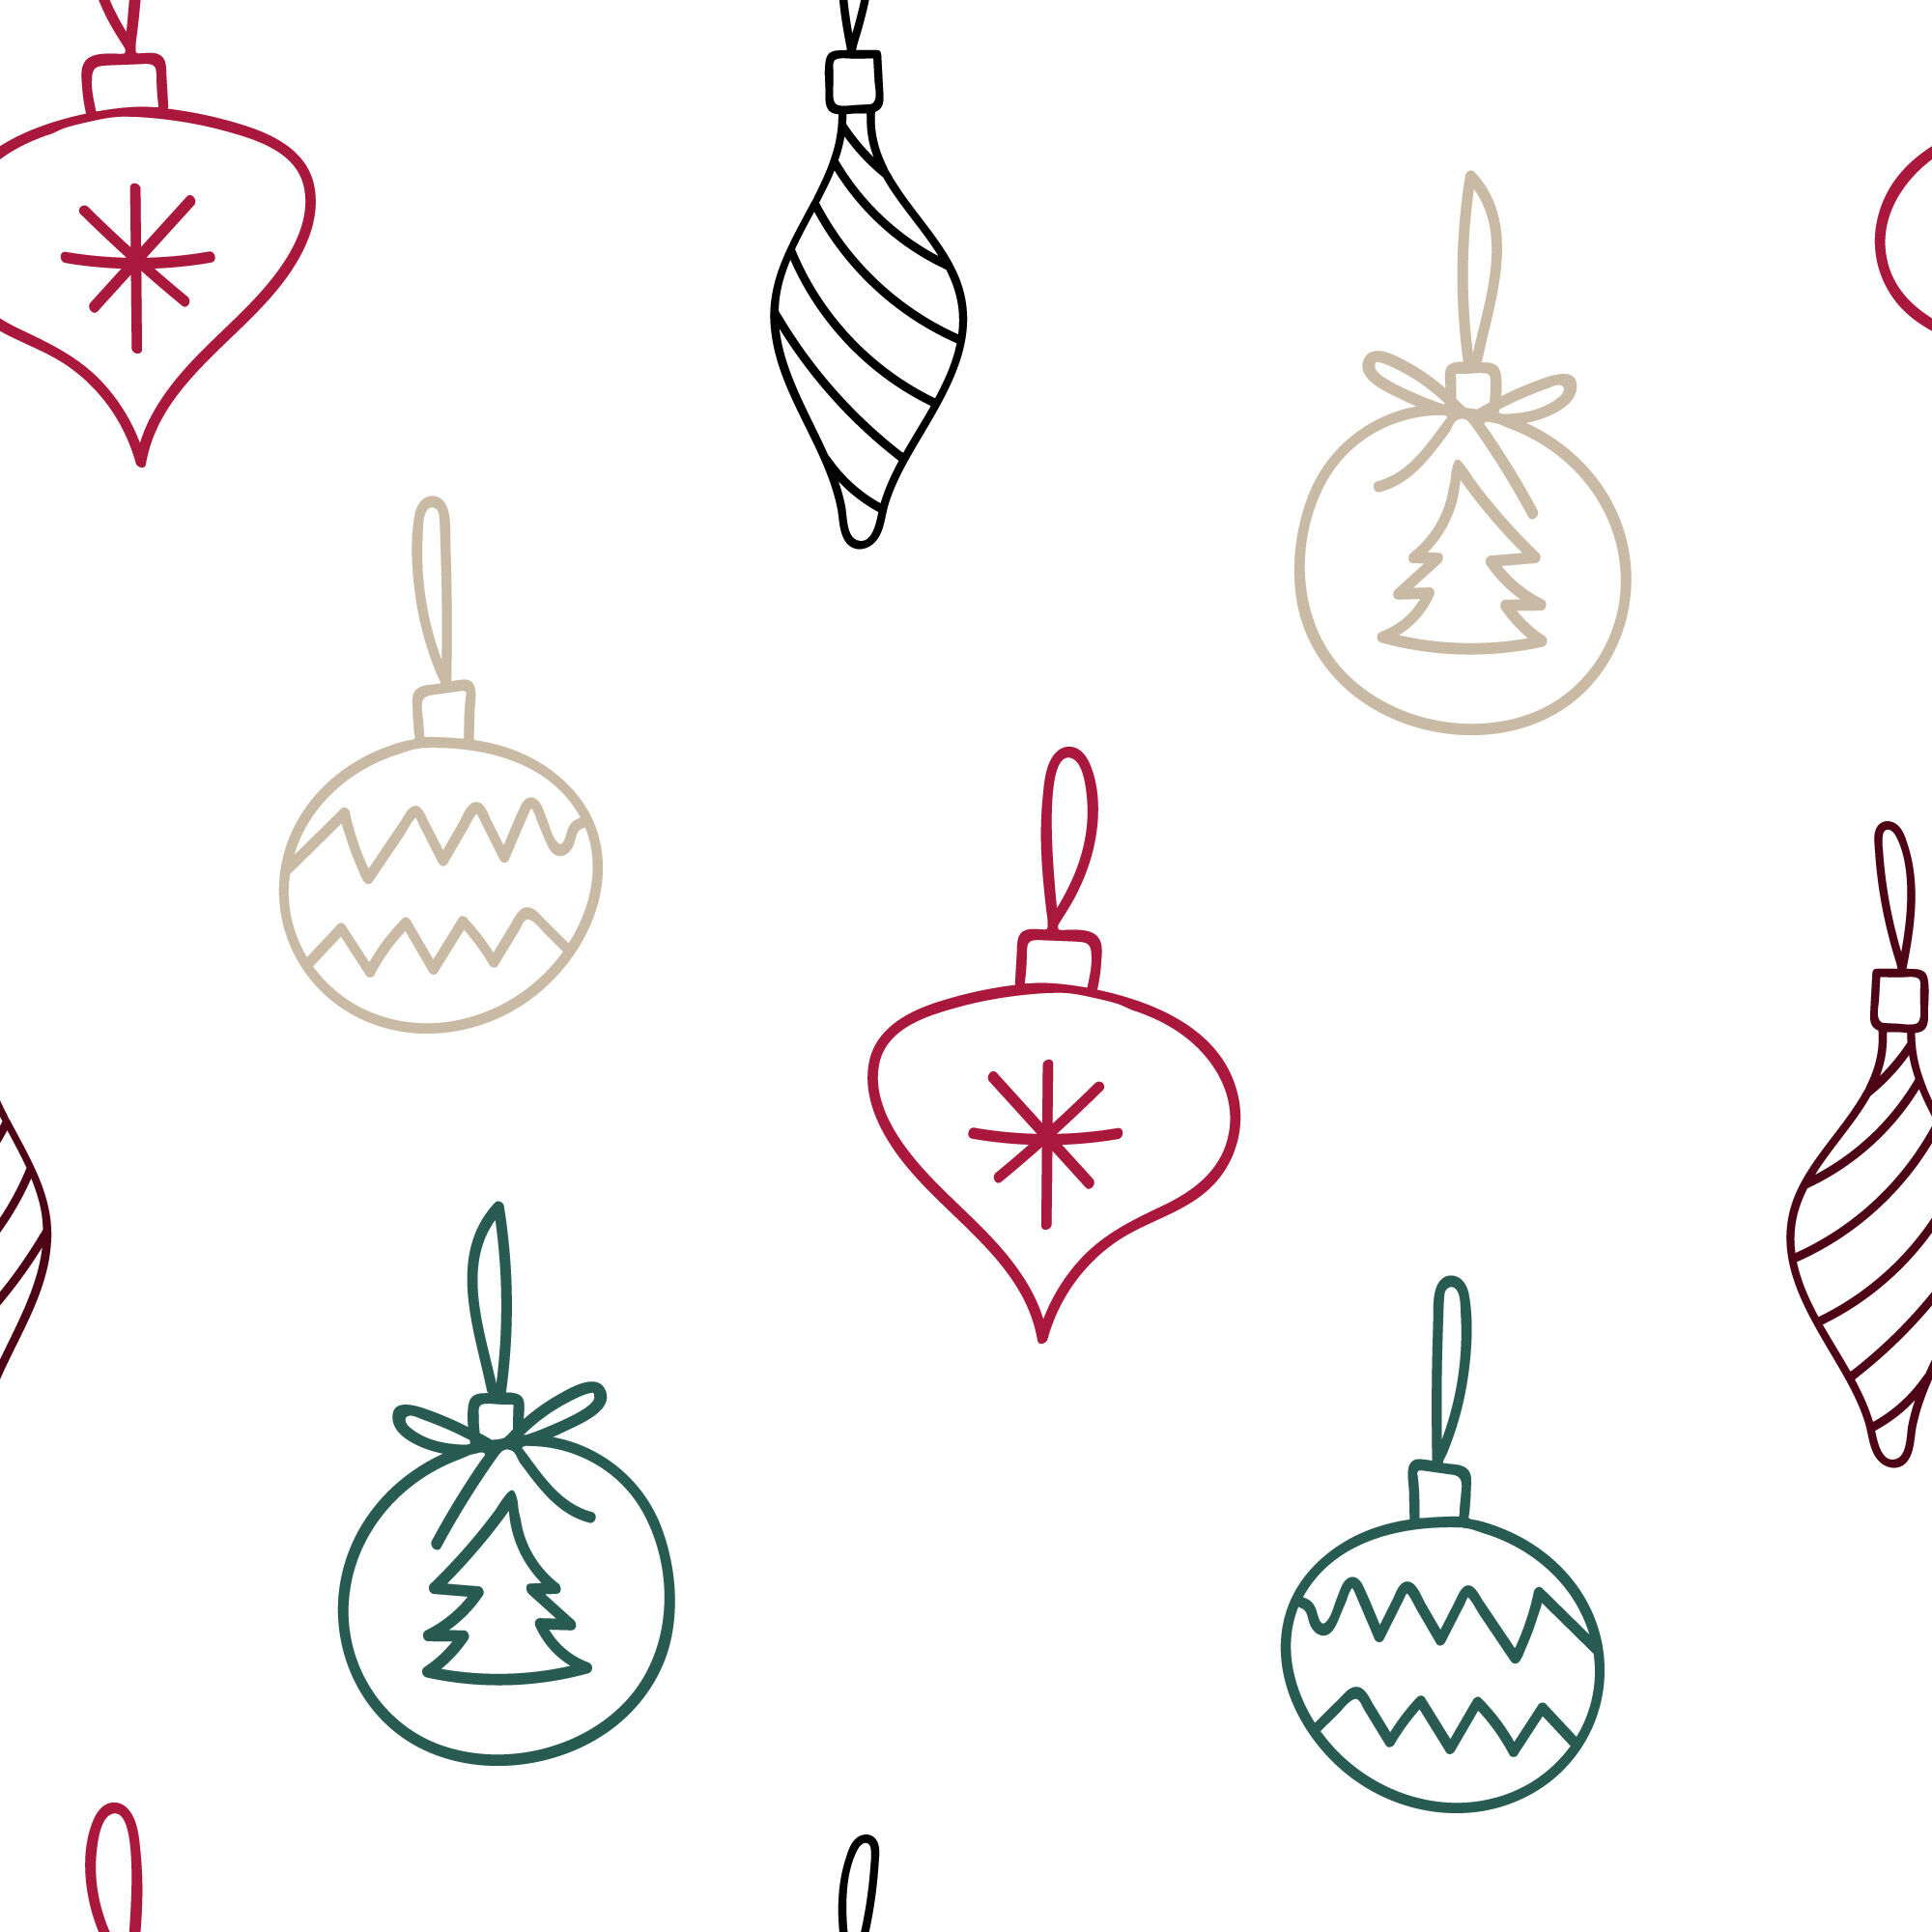 Doodle Christmas Tree Decorations Seamless Repeating Pattern By